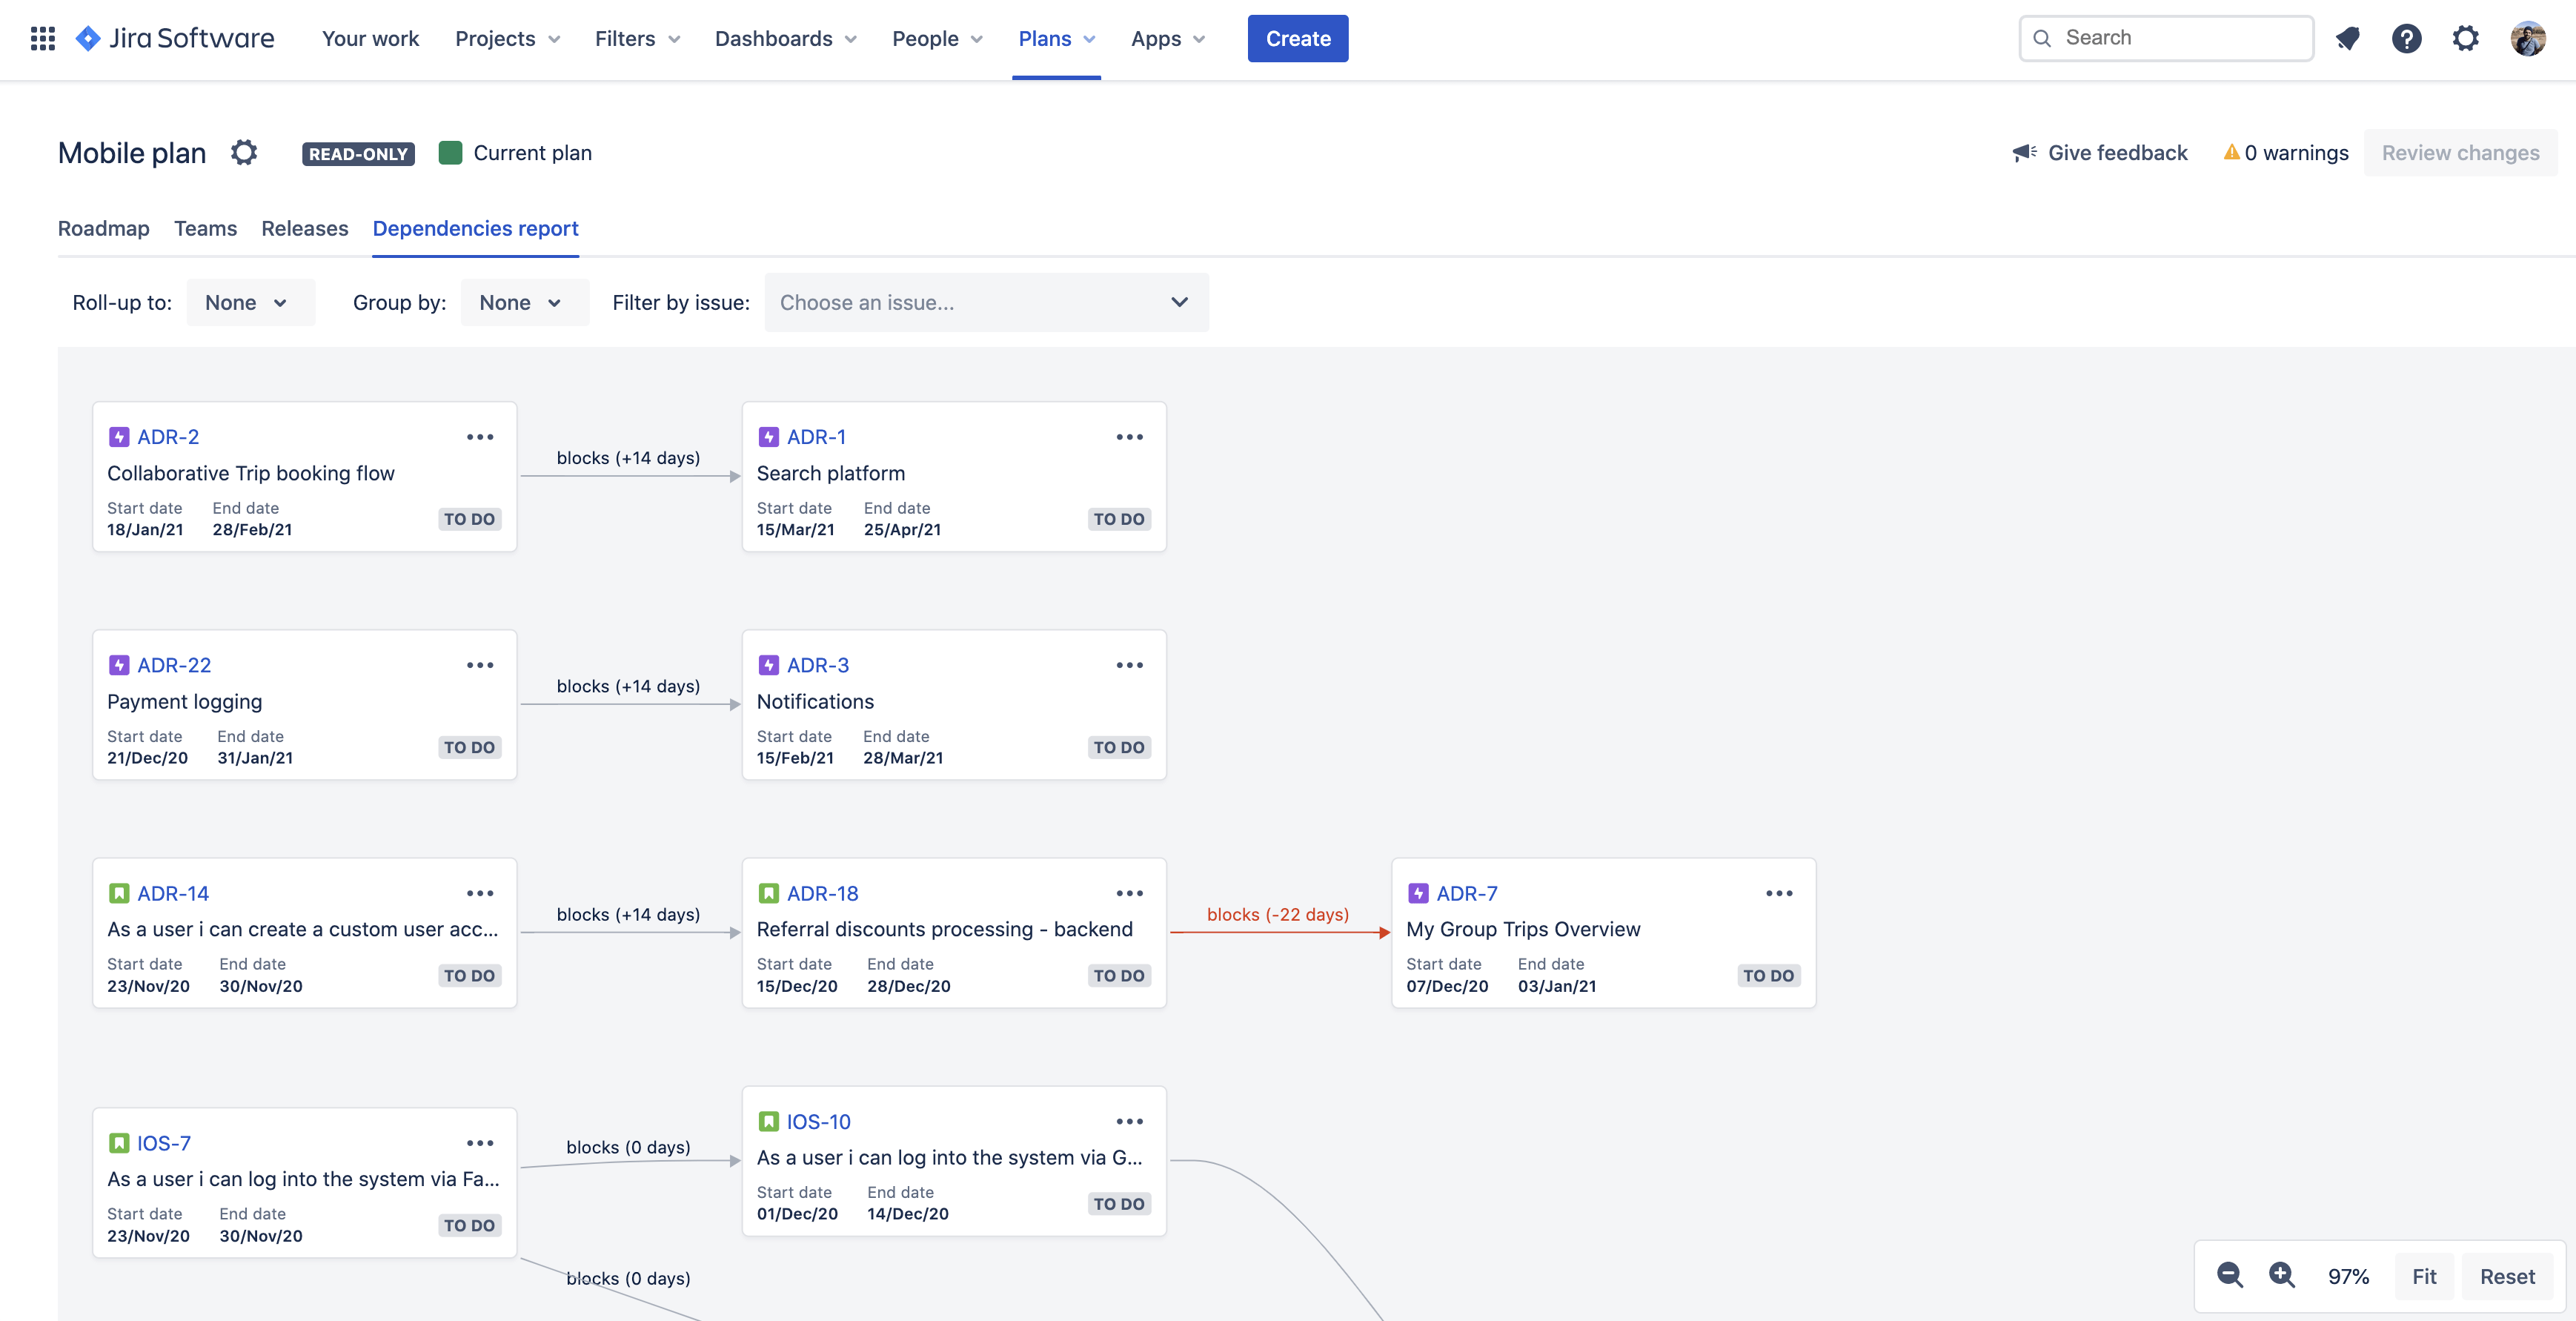 Advanced Roadmap dependencies report tab